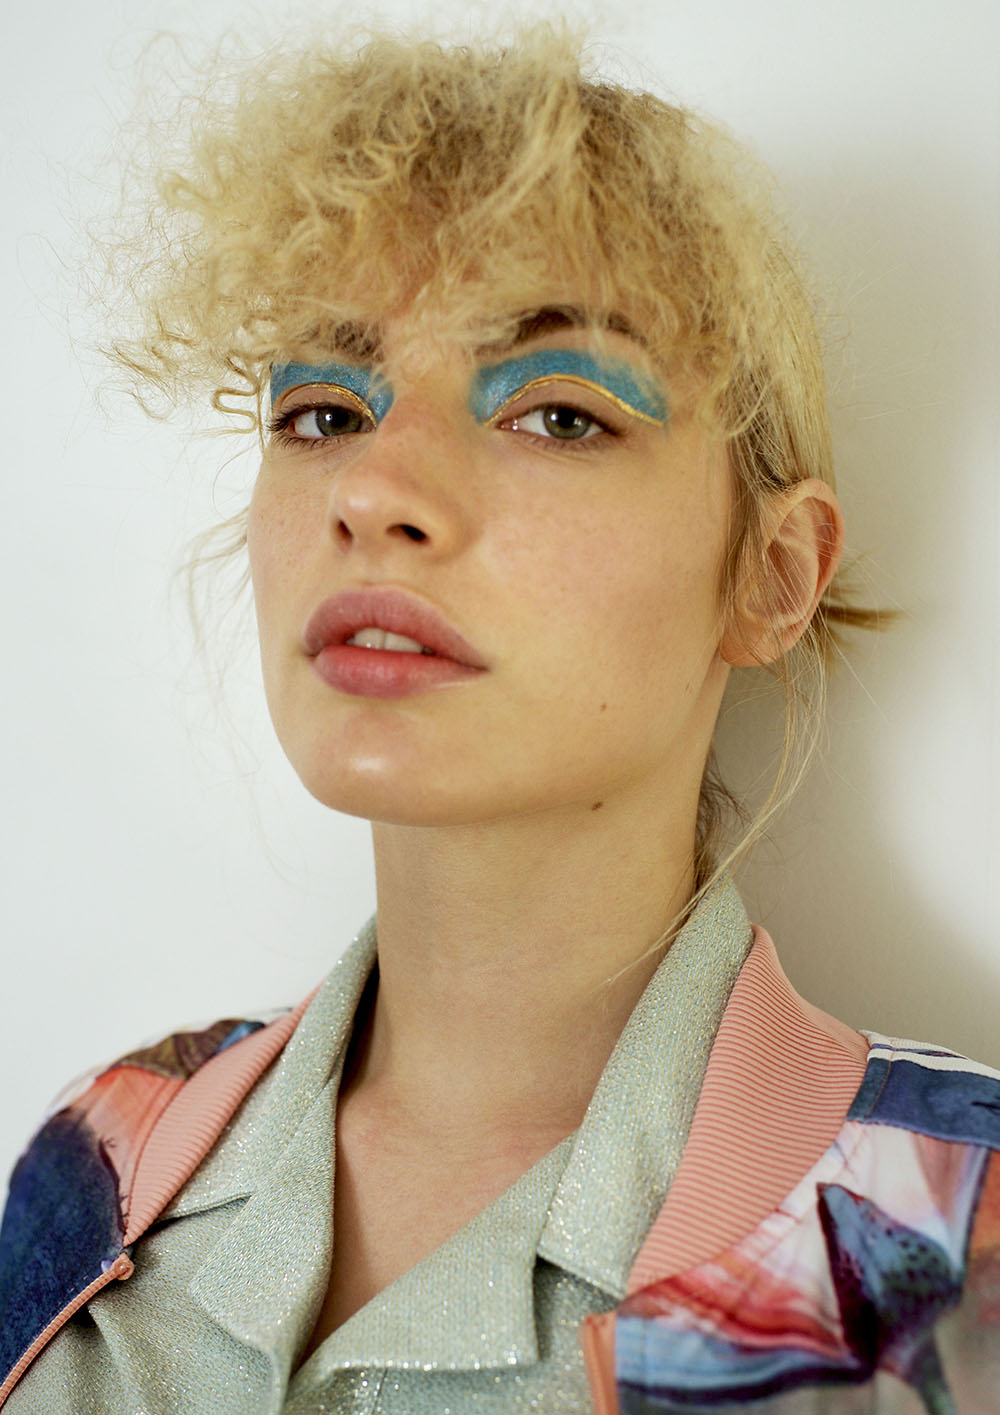 Lonely Beauty editorial by Kim Latieule